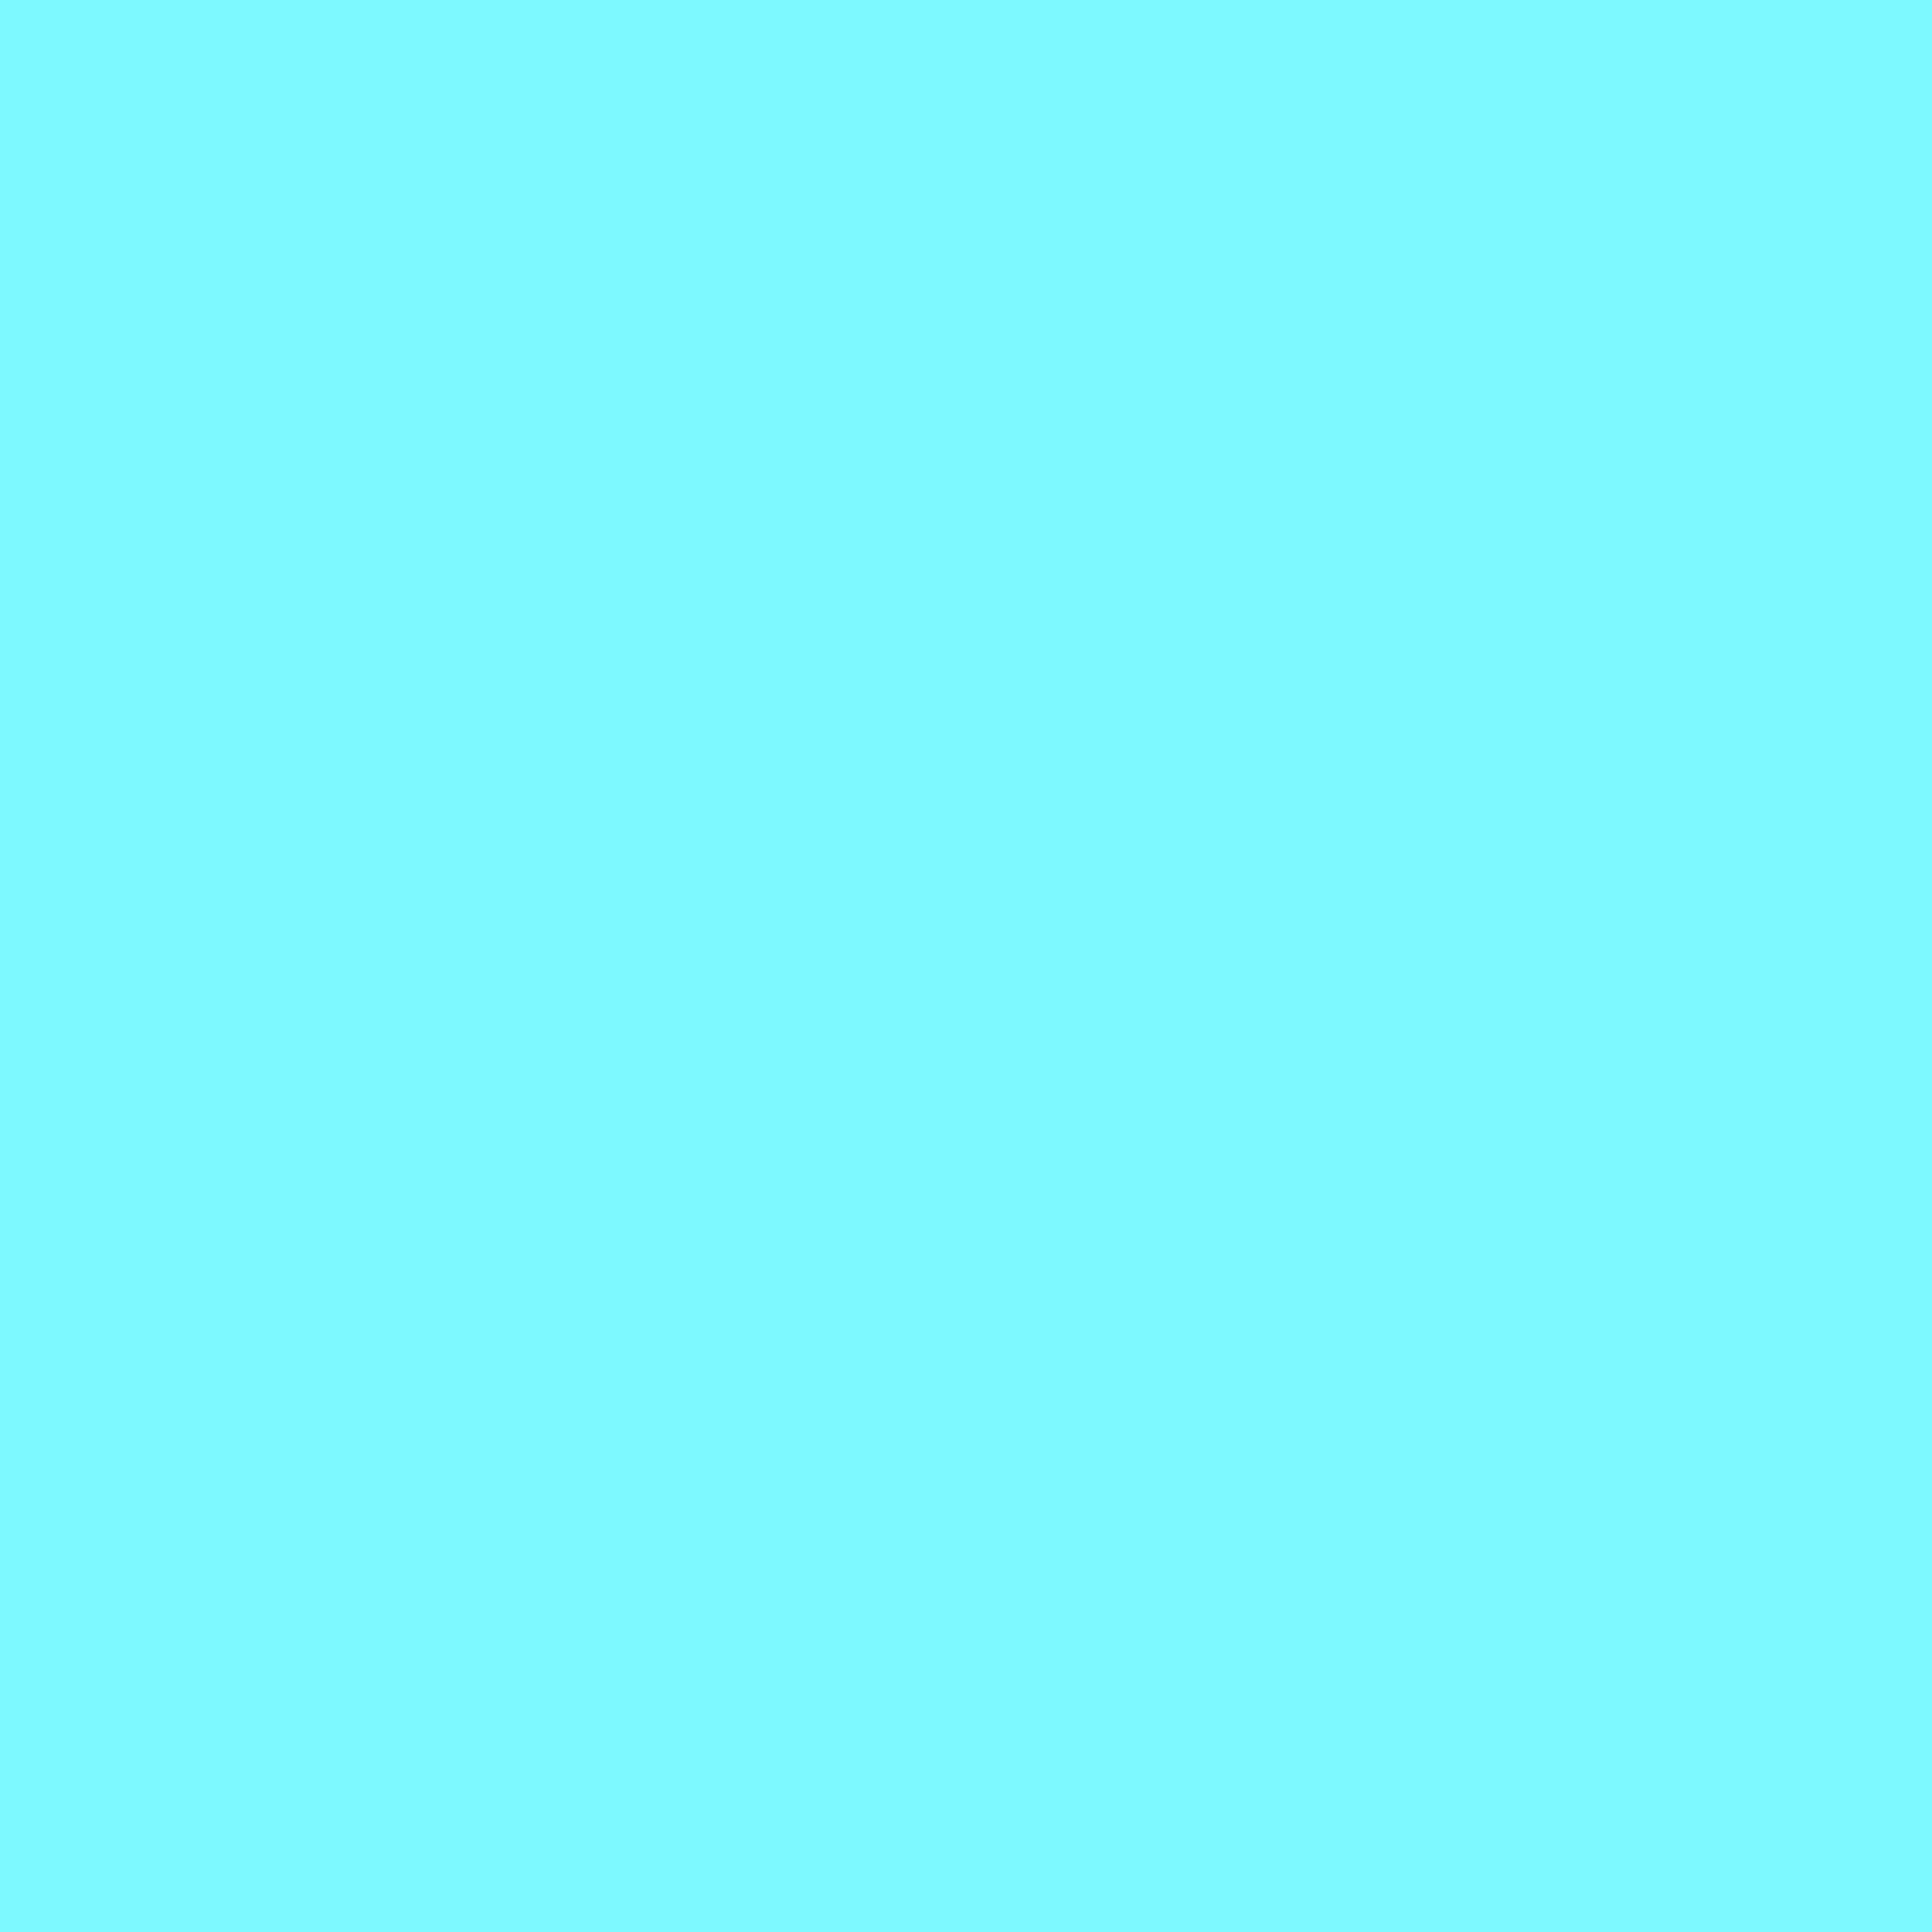 2048x2048 Electric Blue Solid Color Background